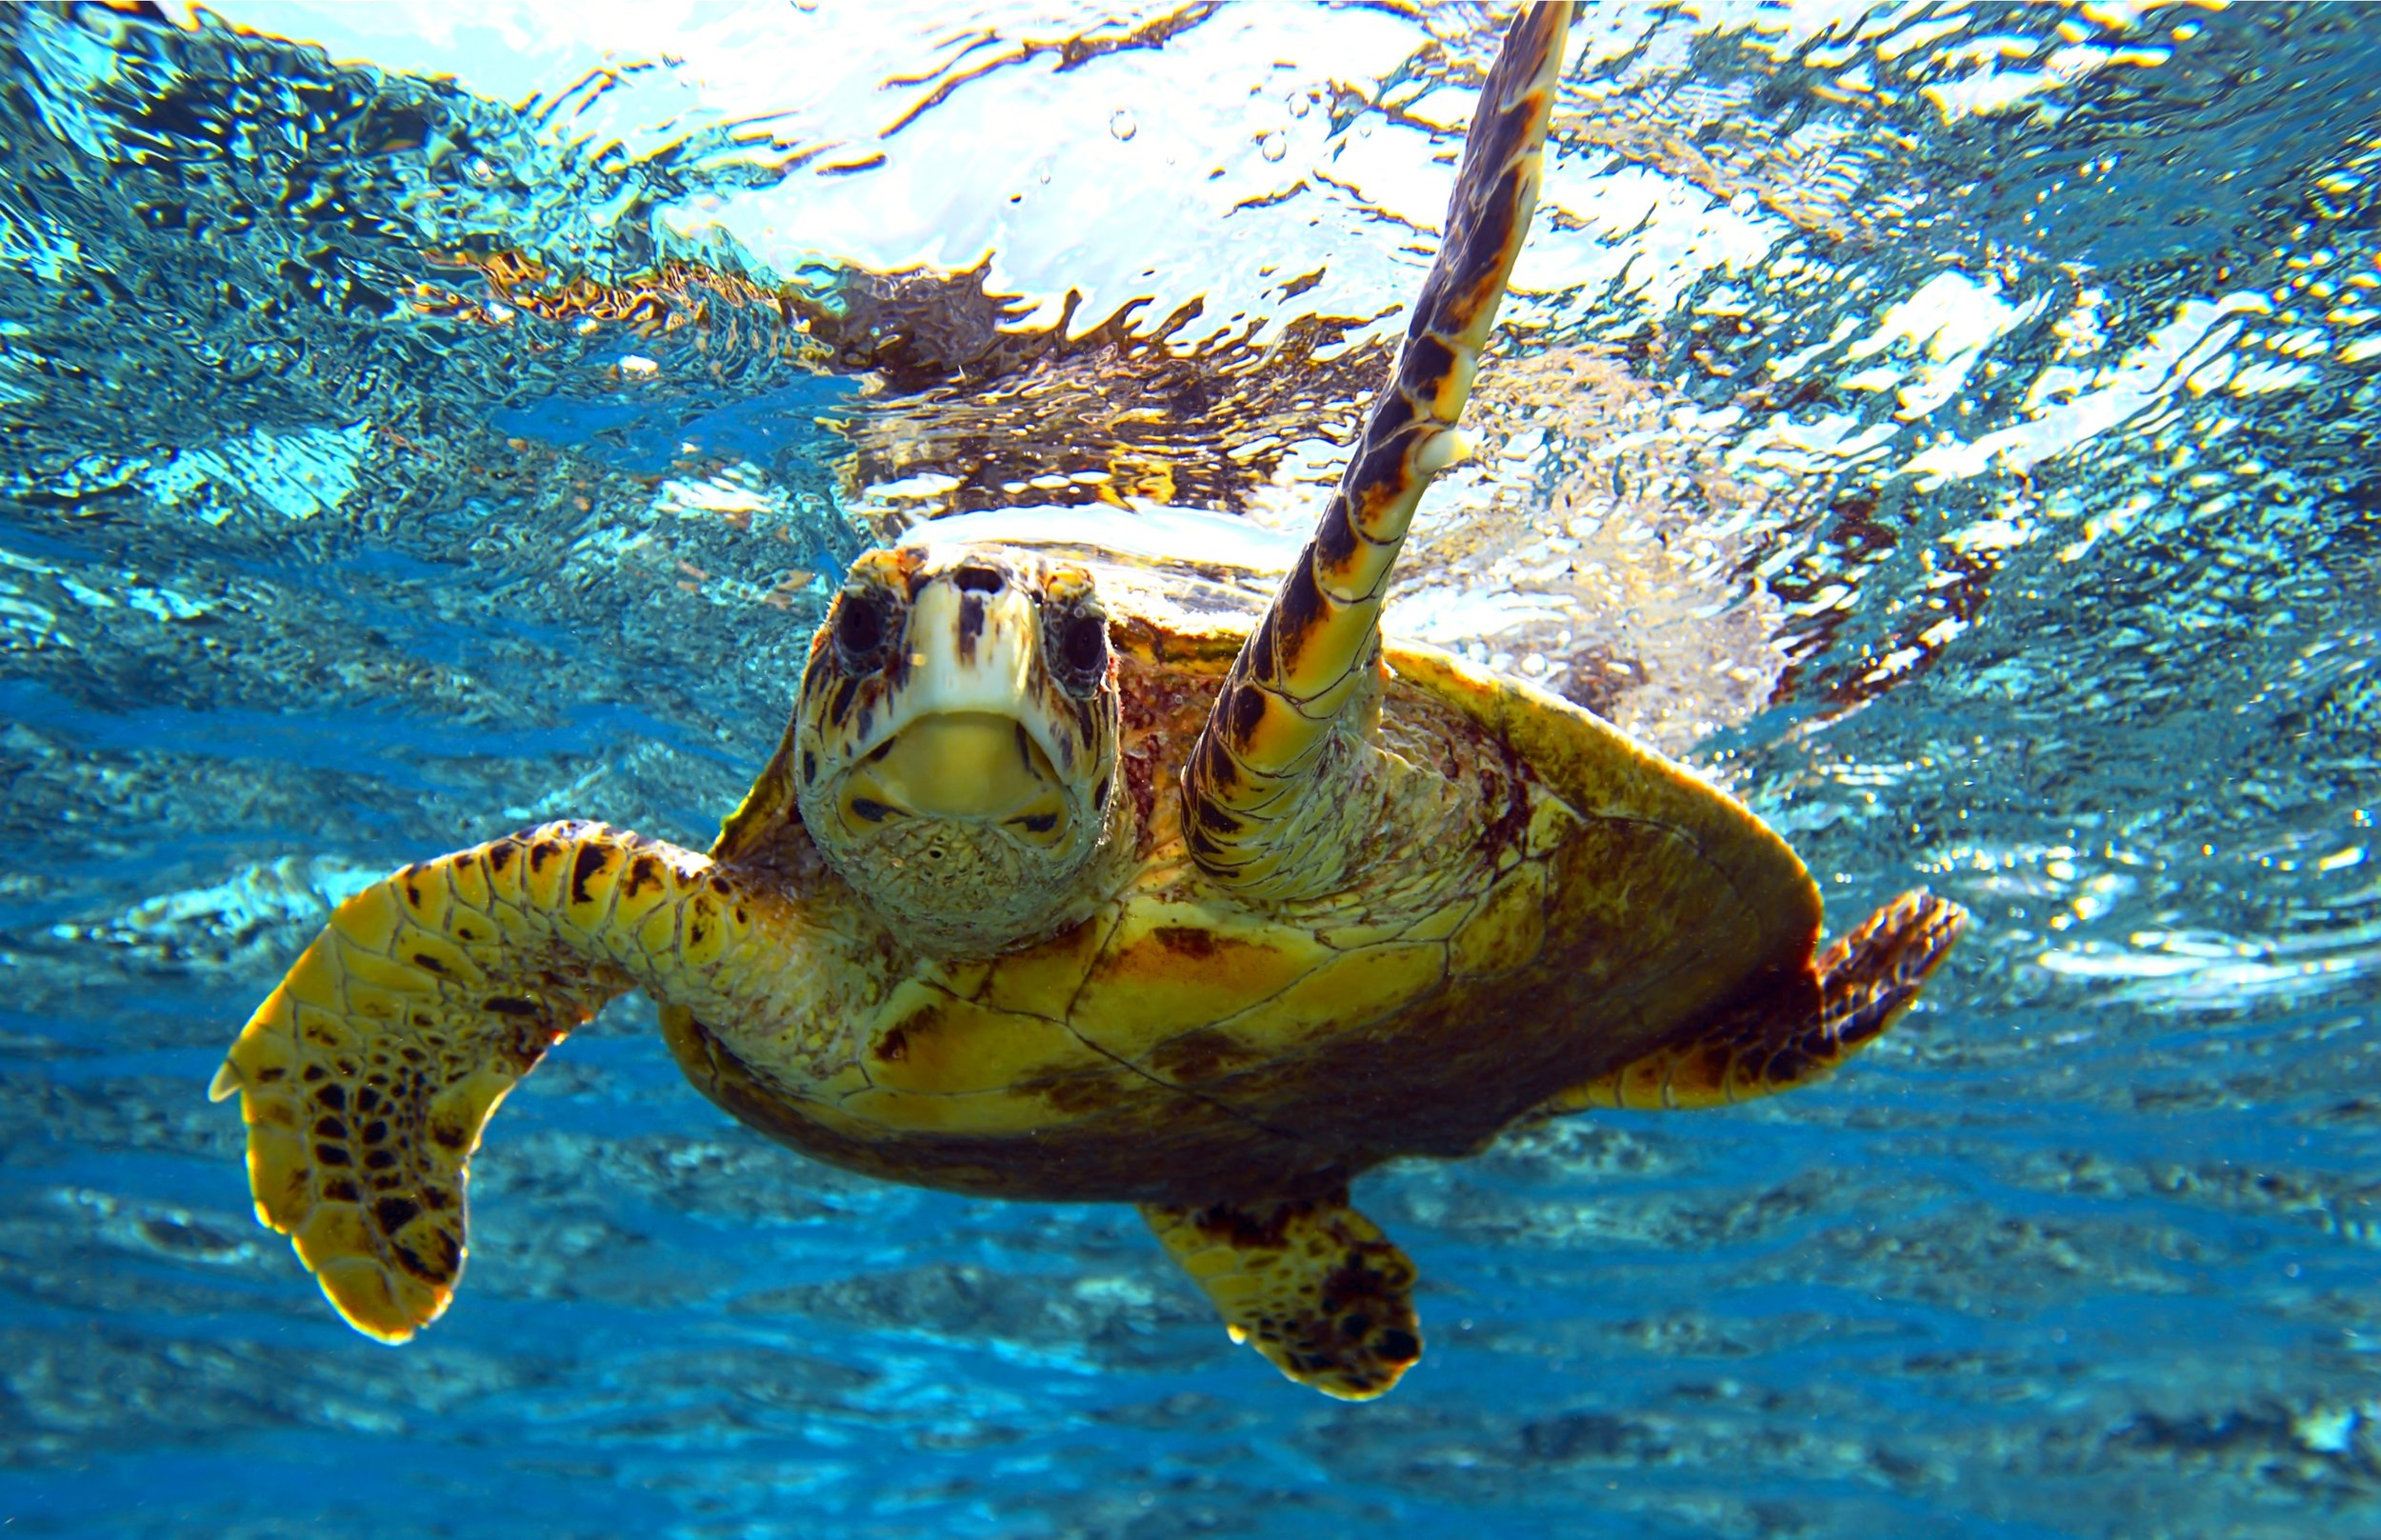 Sea turtles are attracted to Brewers Bay by the plentiful seagrass beds.